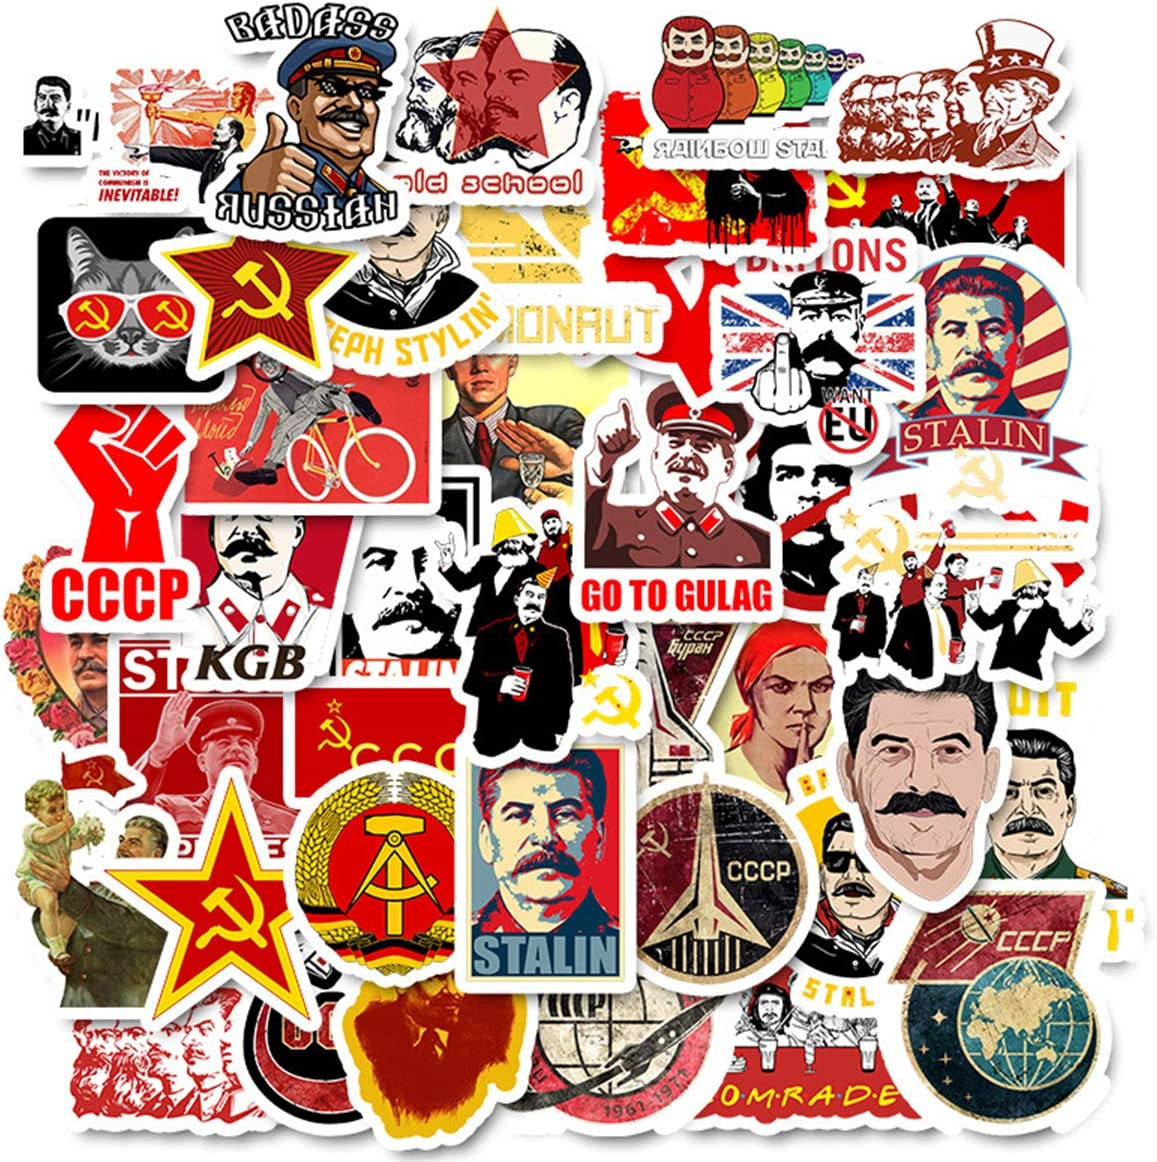 50pcs Stalin USSR CCCP Stickers for Laptop Water Bottle Luggage Snowboard Bicycle Skateboard Decal for Kids Teens Adult Waterproof Aesthetic Stickers